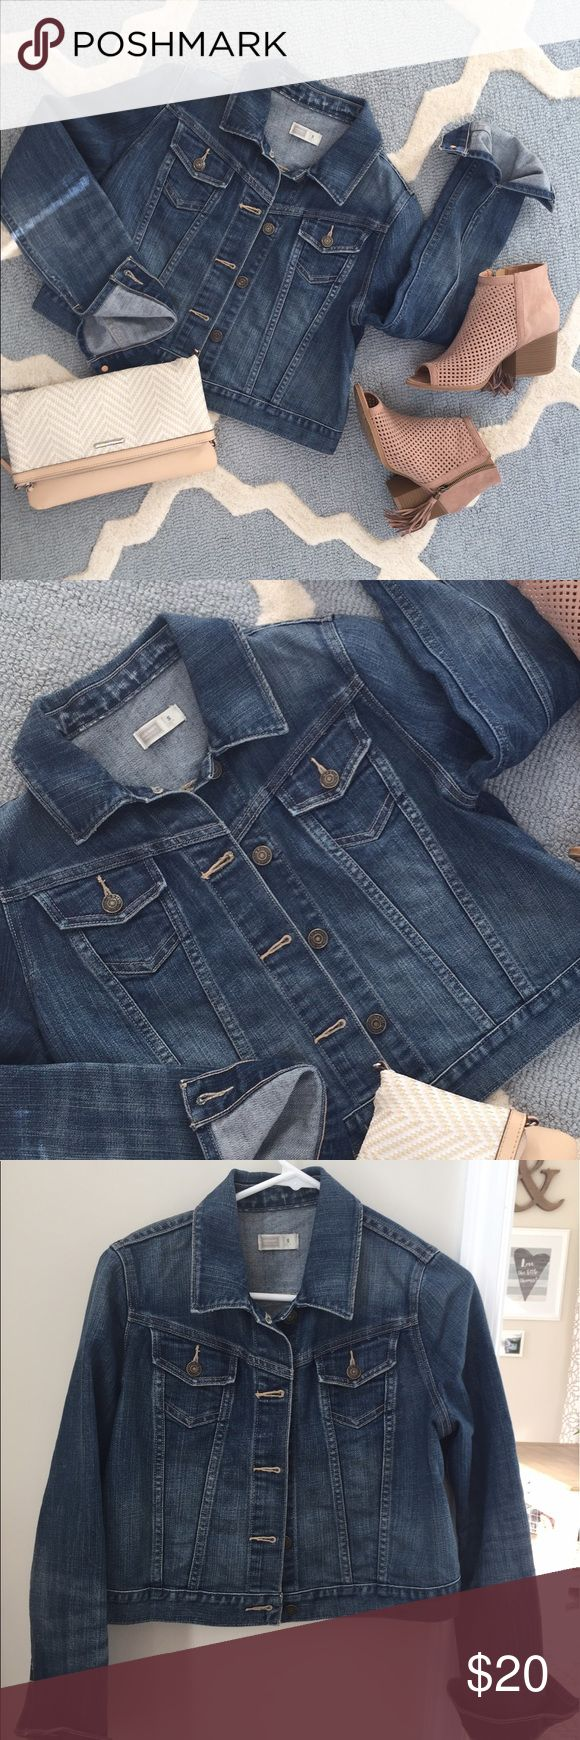 Maternity jean jacket Old Navy maternity jean jacket in dark wash. Super cute with any spring outfit! :) Excellent condition. Smoke-free and pet-free home. Please let me know if you have any questions!! Happy Poshing! :) Old Navy Jackets & Coats Jean Jackets